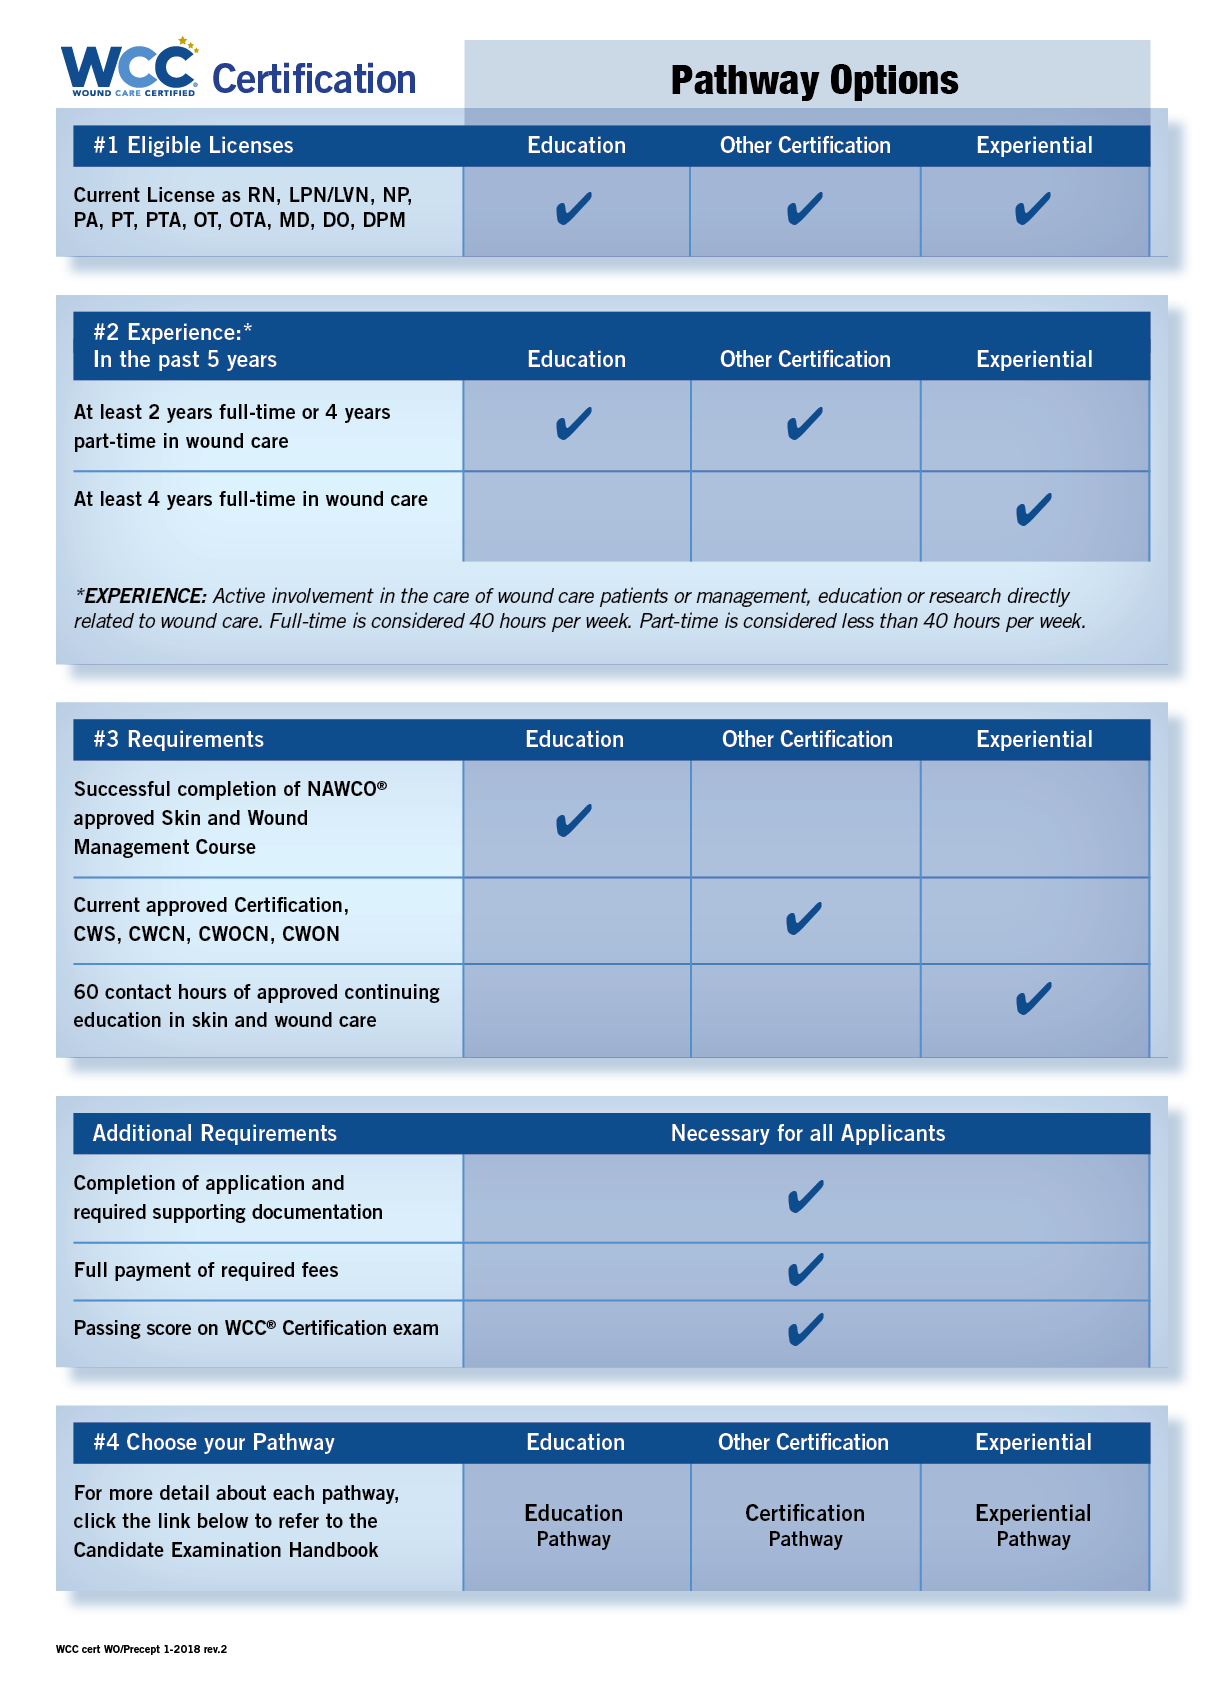 Wound care certification nawco wound care and ostomy the chart below shows the different pathway options required to sit for the wound care certified wcc certification exam review the information to see xflitez Gallery